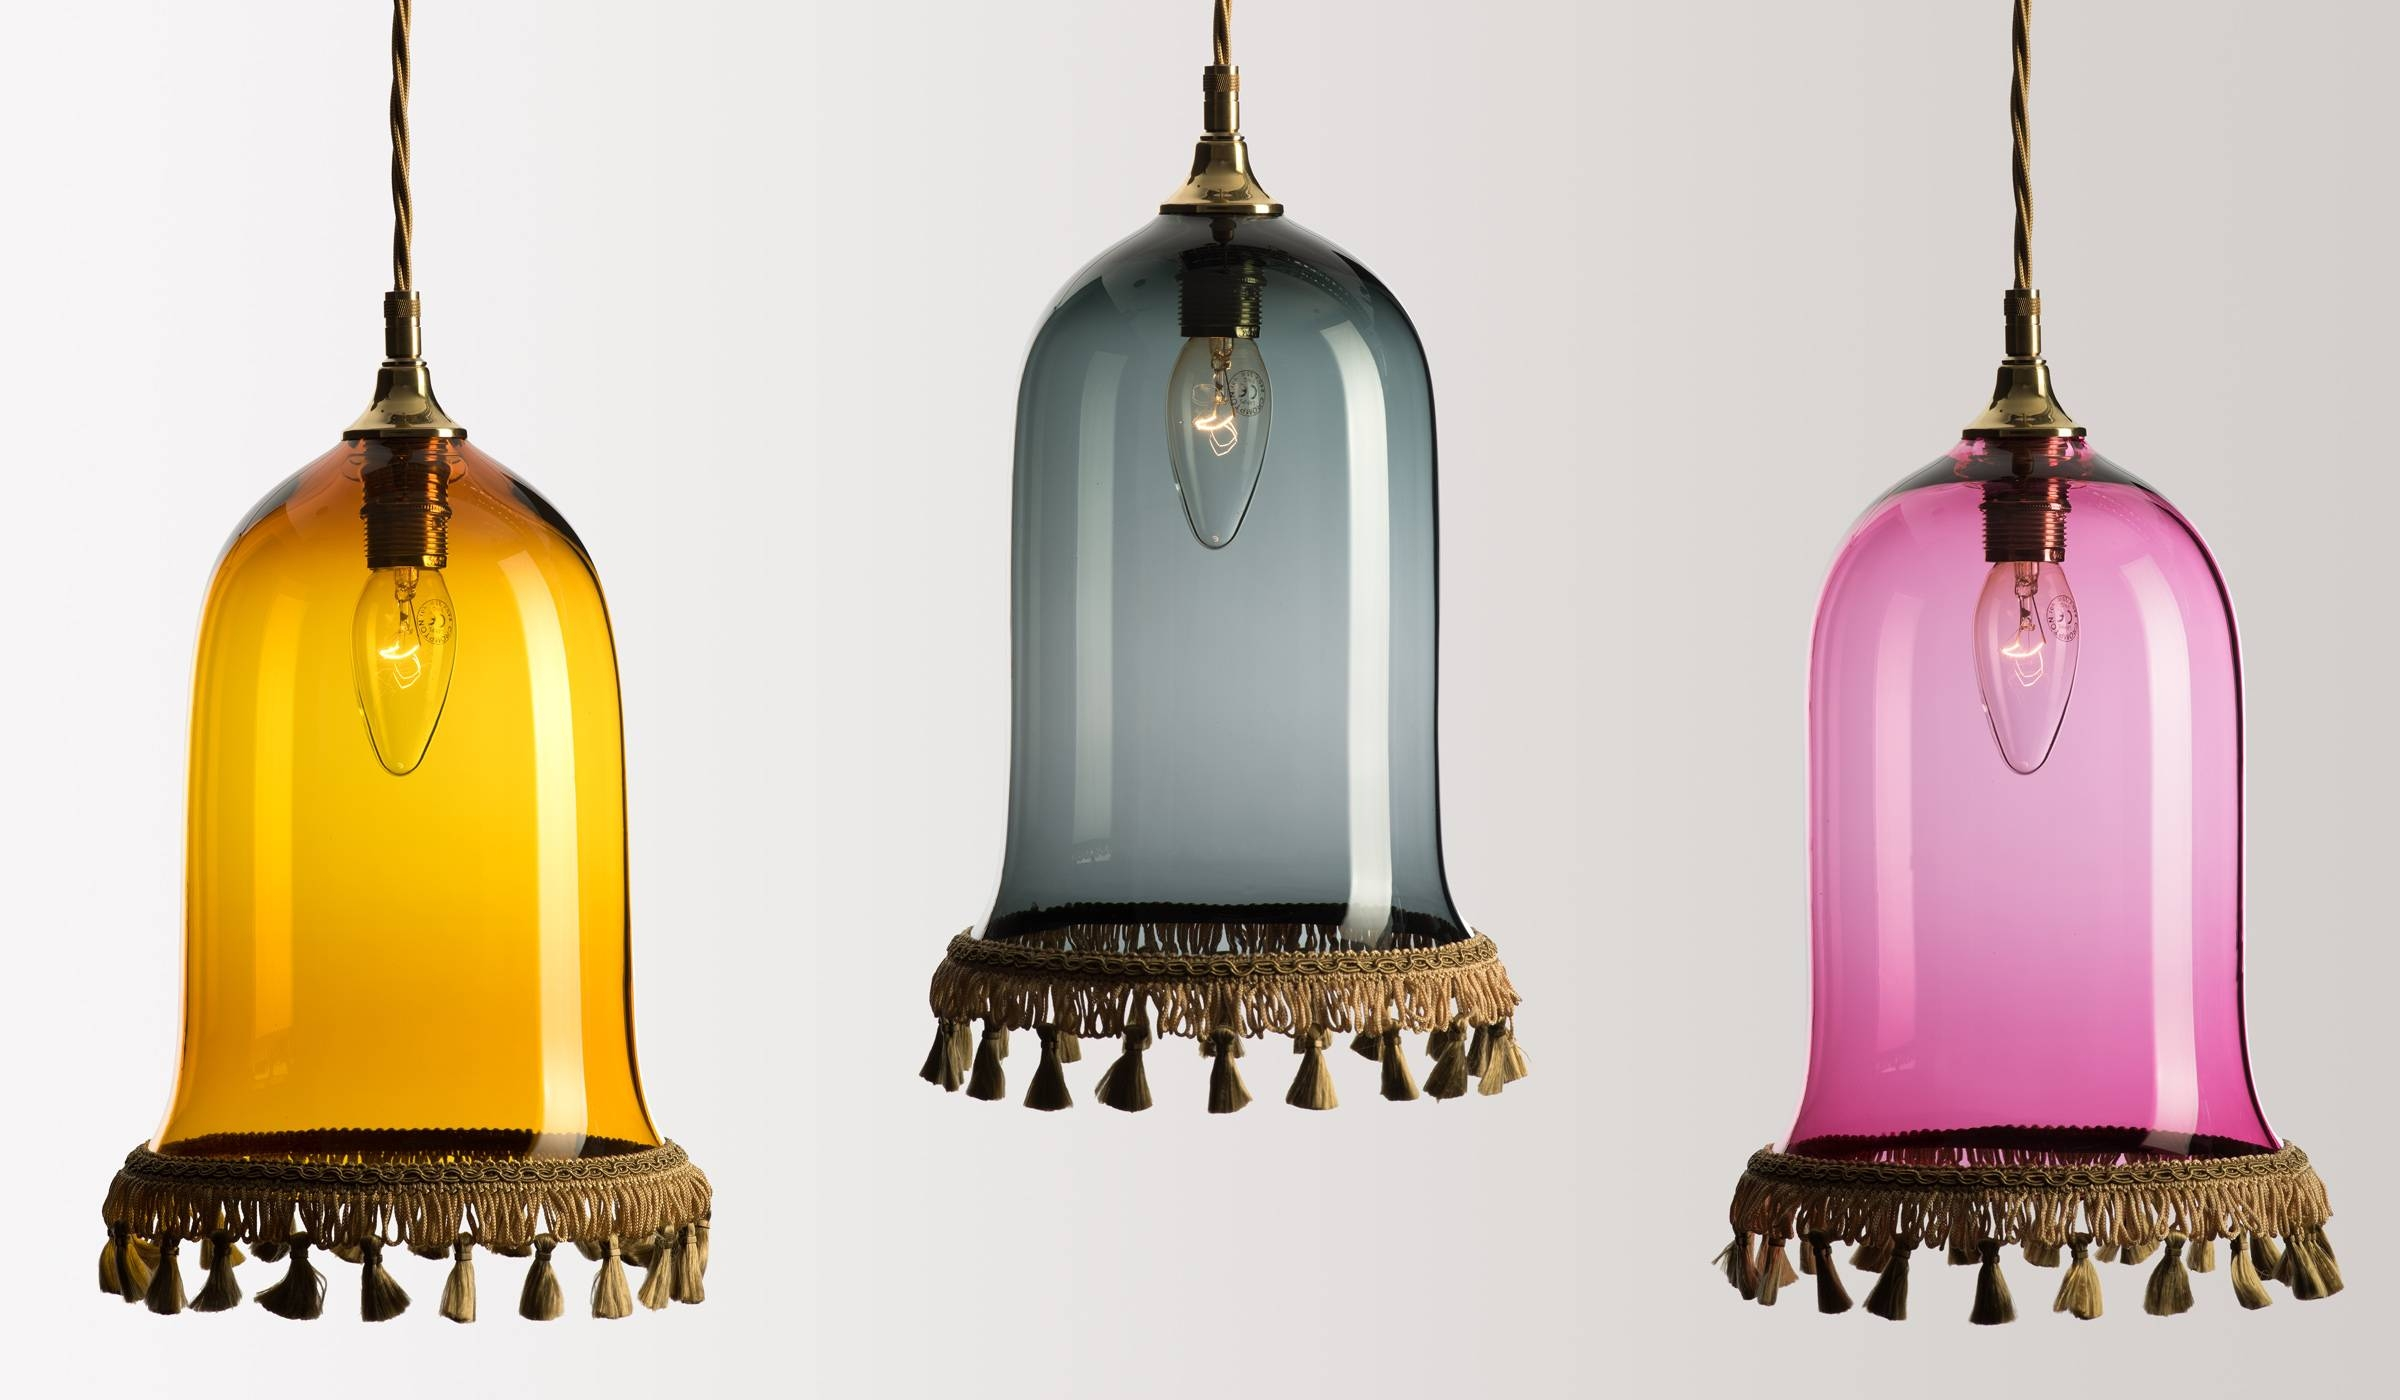 Glass Lighting - Rothschild & Bickers with regard to Coloured Glass Lights (Image 11 of 15)